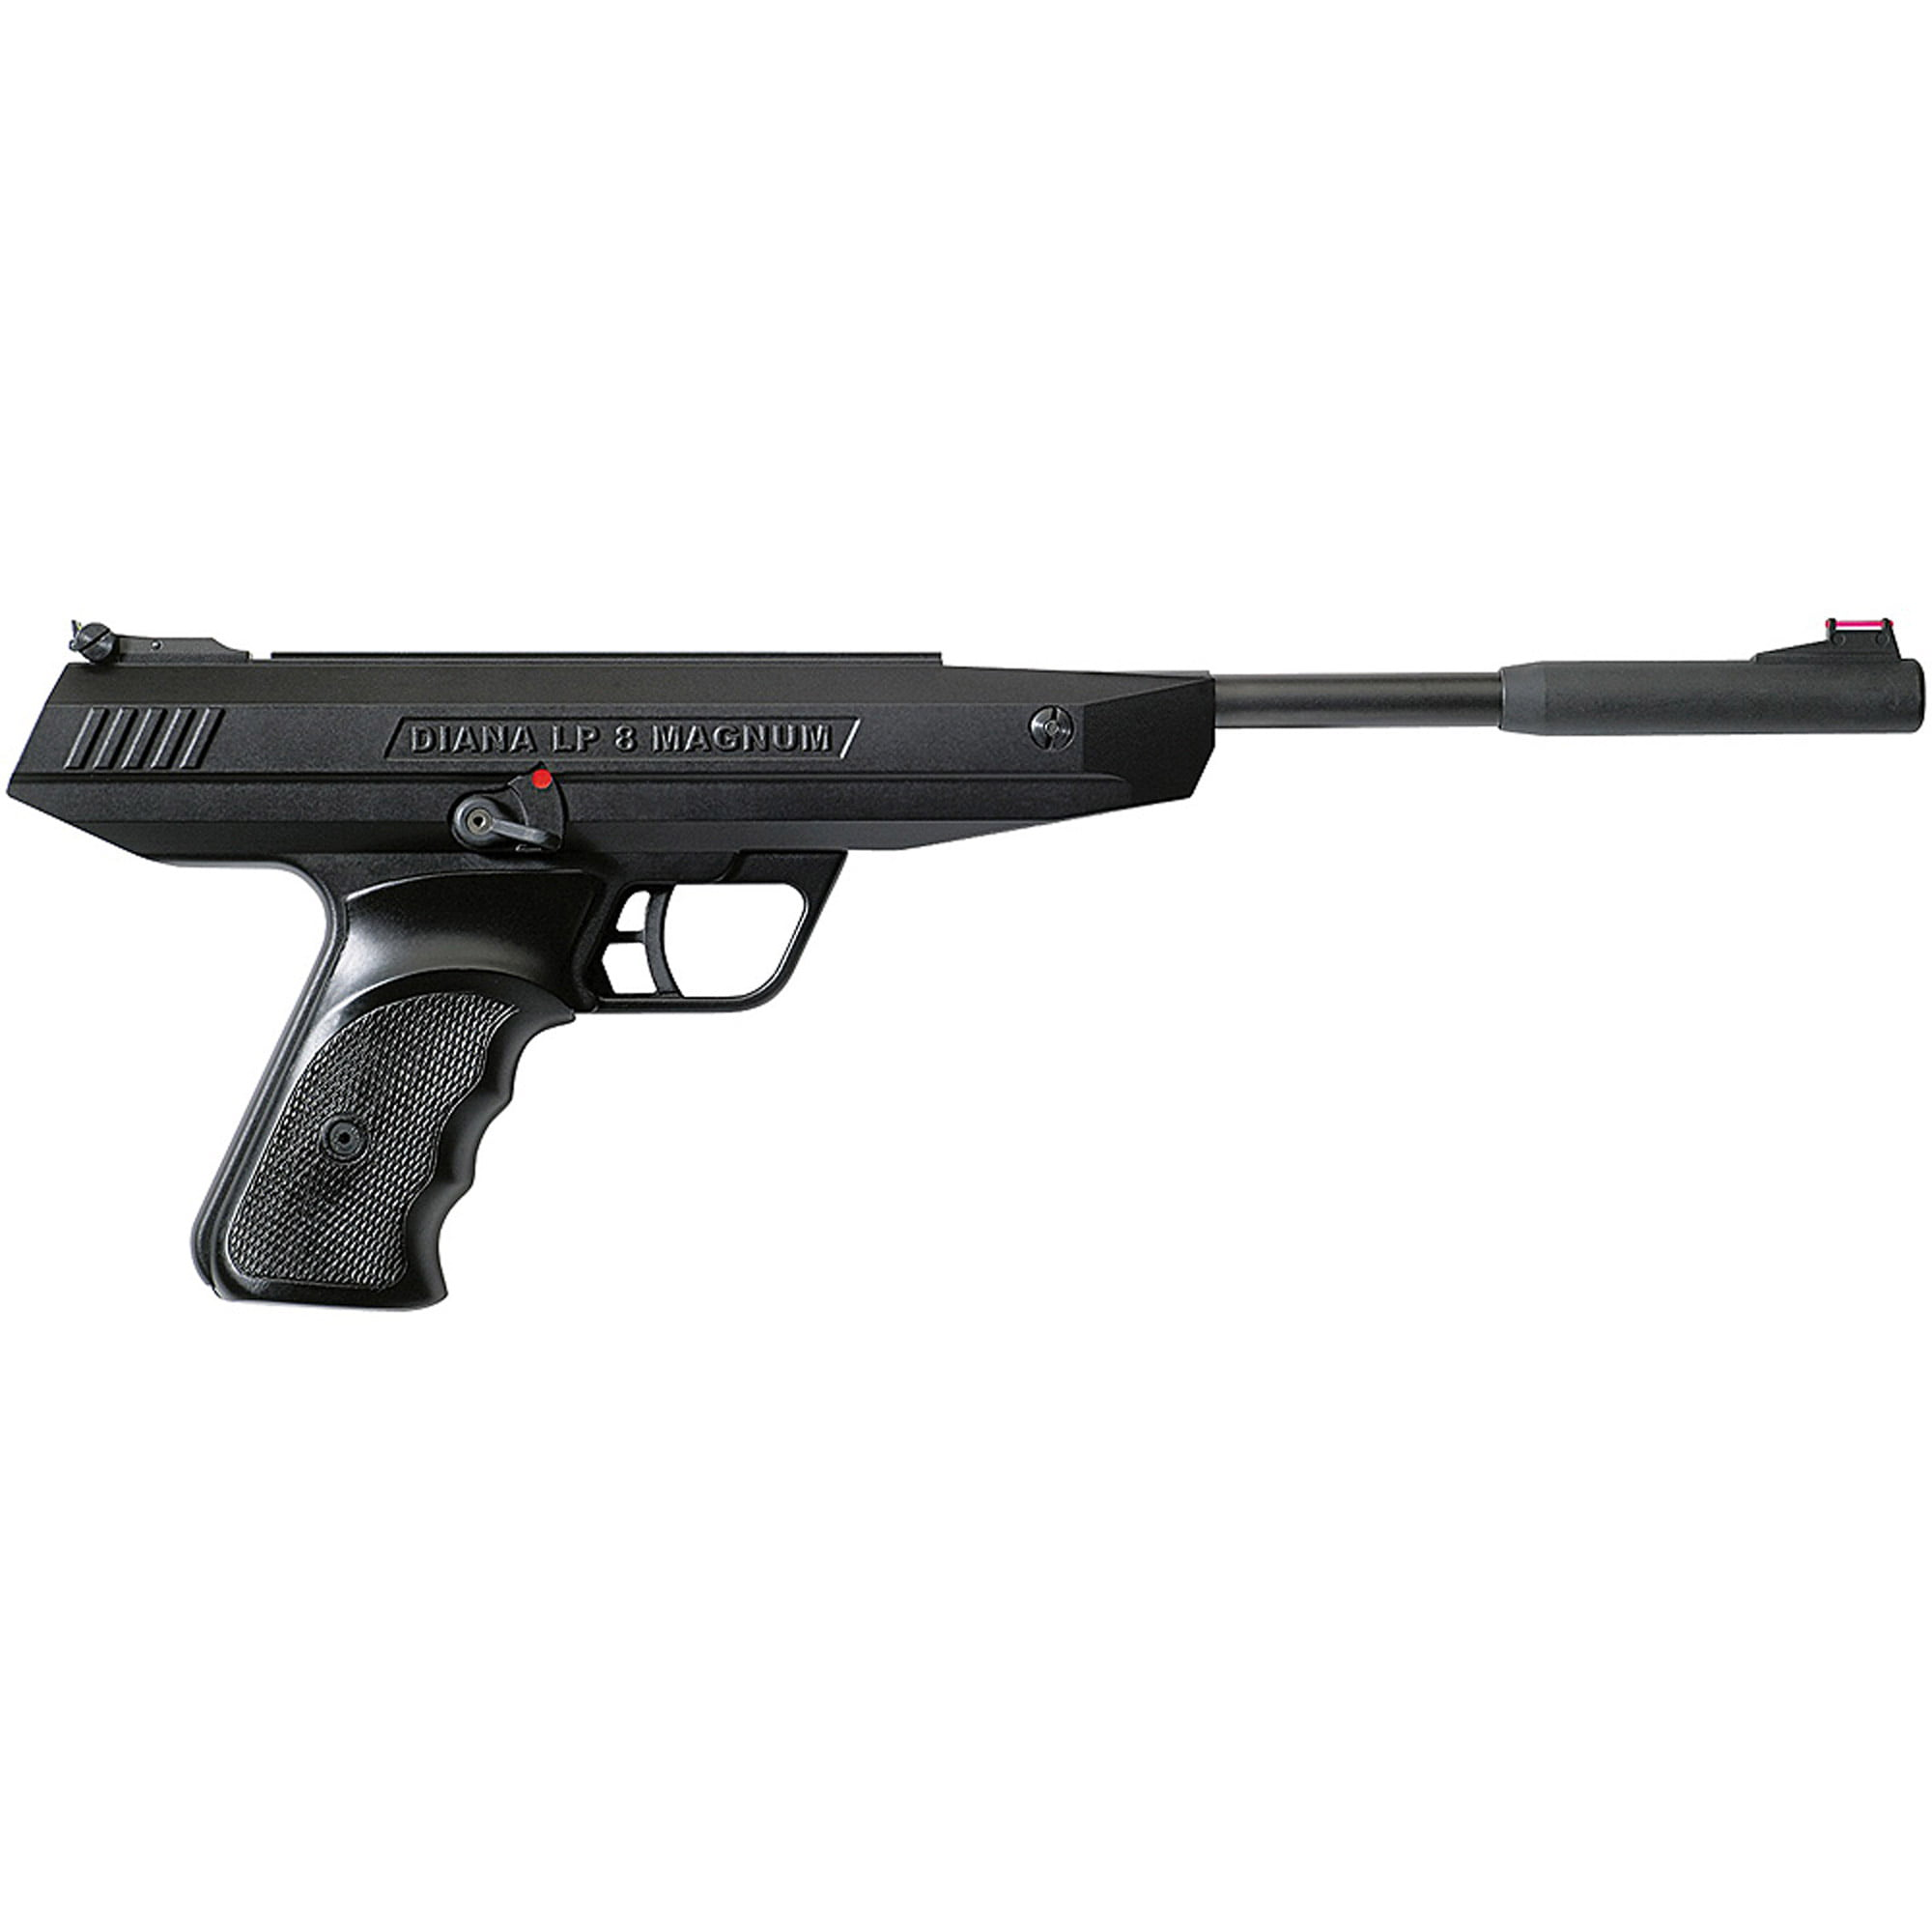 RWS 2166930 Pellet Air Pistol 700fps 0.177cal w Break Action by Umarex